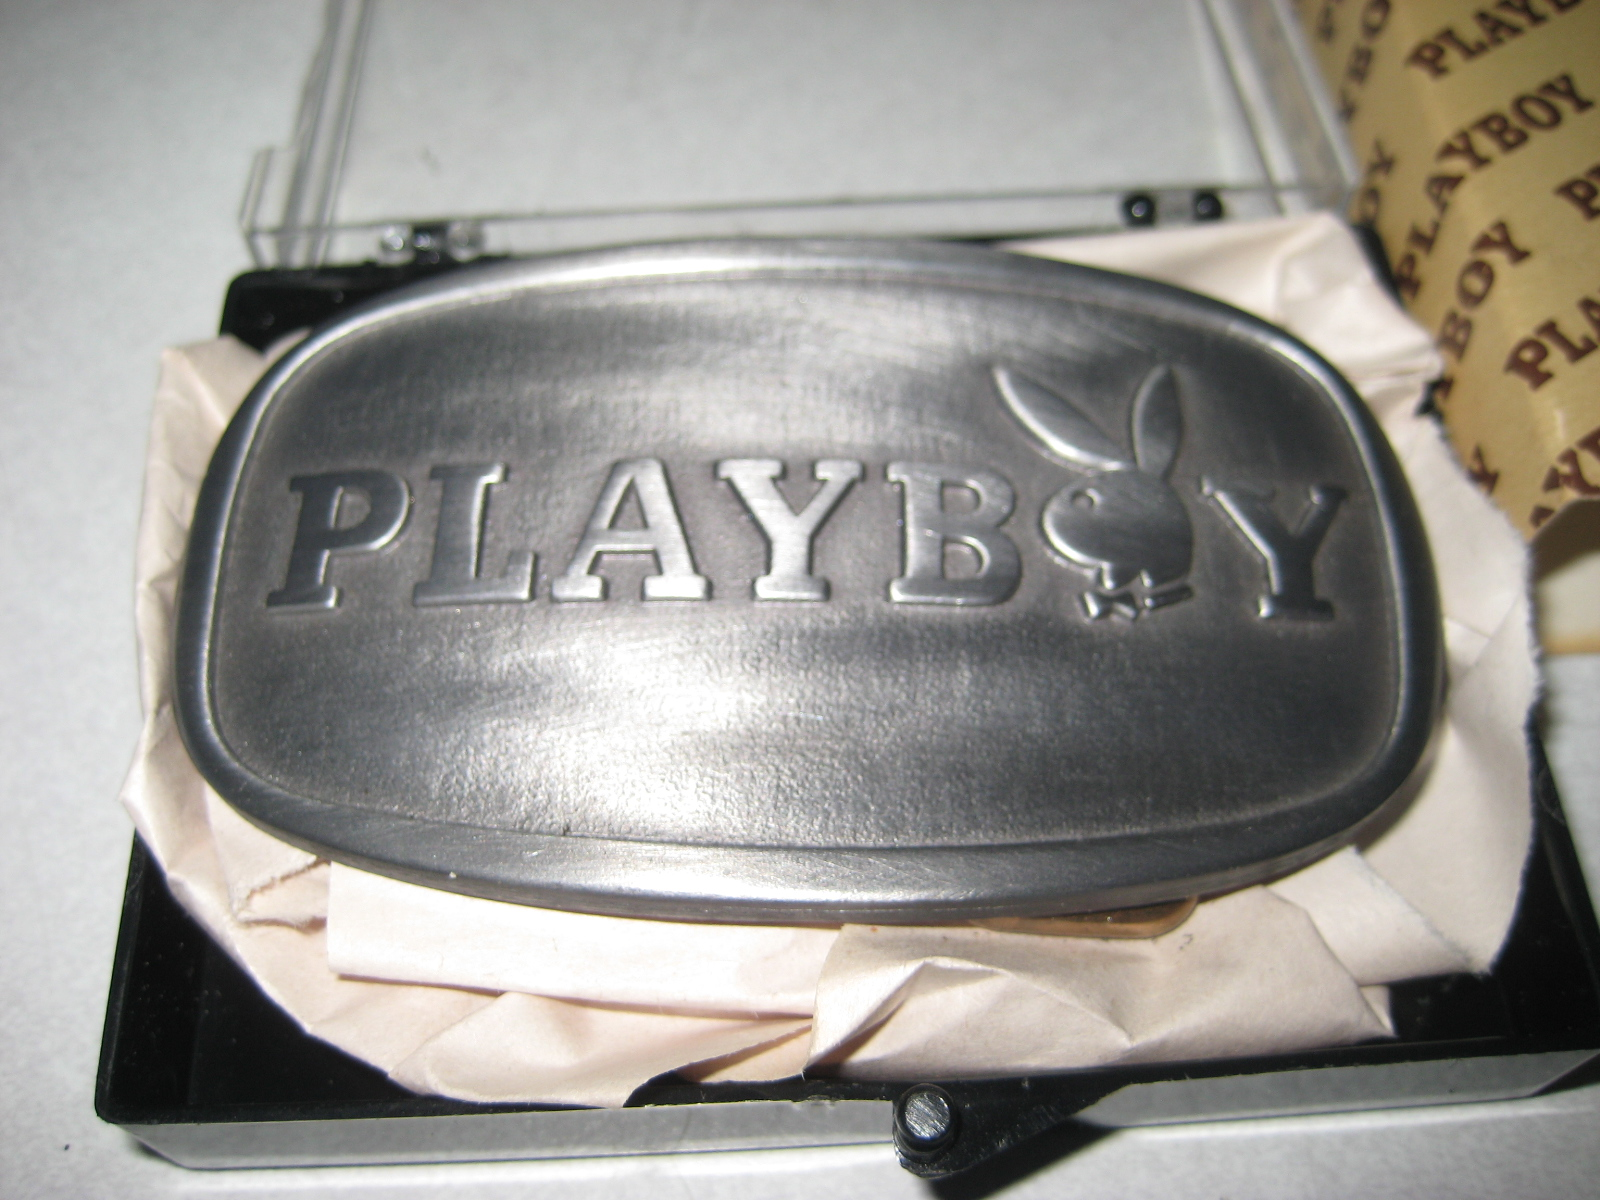 Playboy Belt Buckle